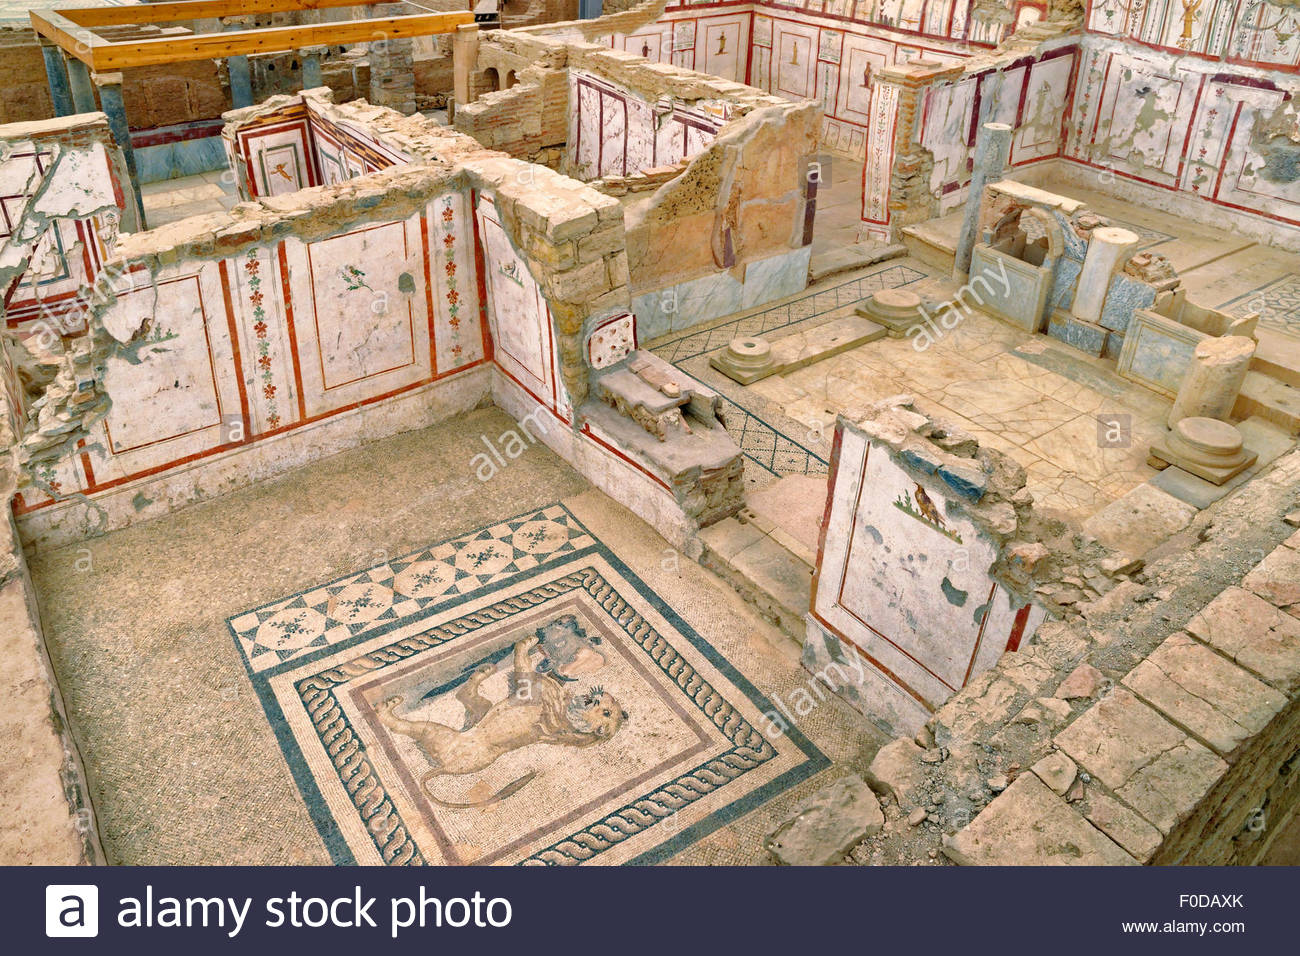 Tomb of Amyntas Fethiye, Inside the covered 'Terraced Houses' archaeological site at the ...